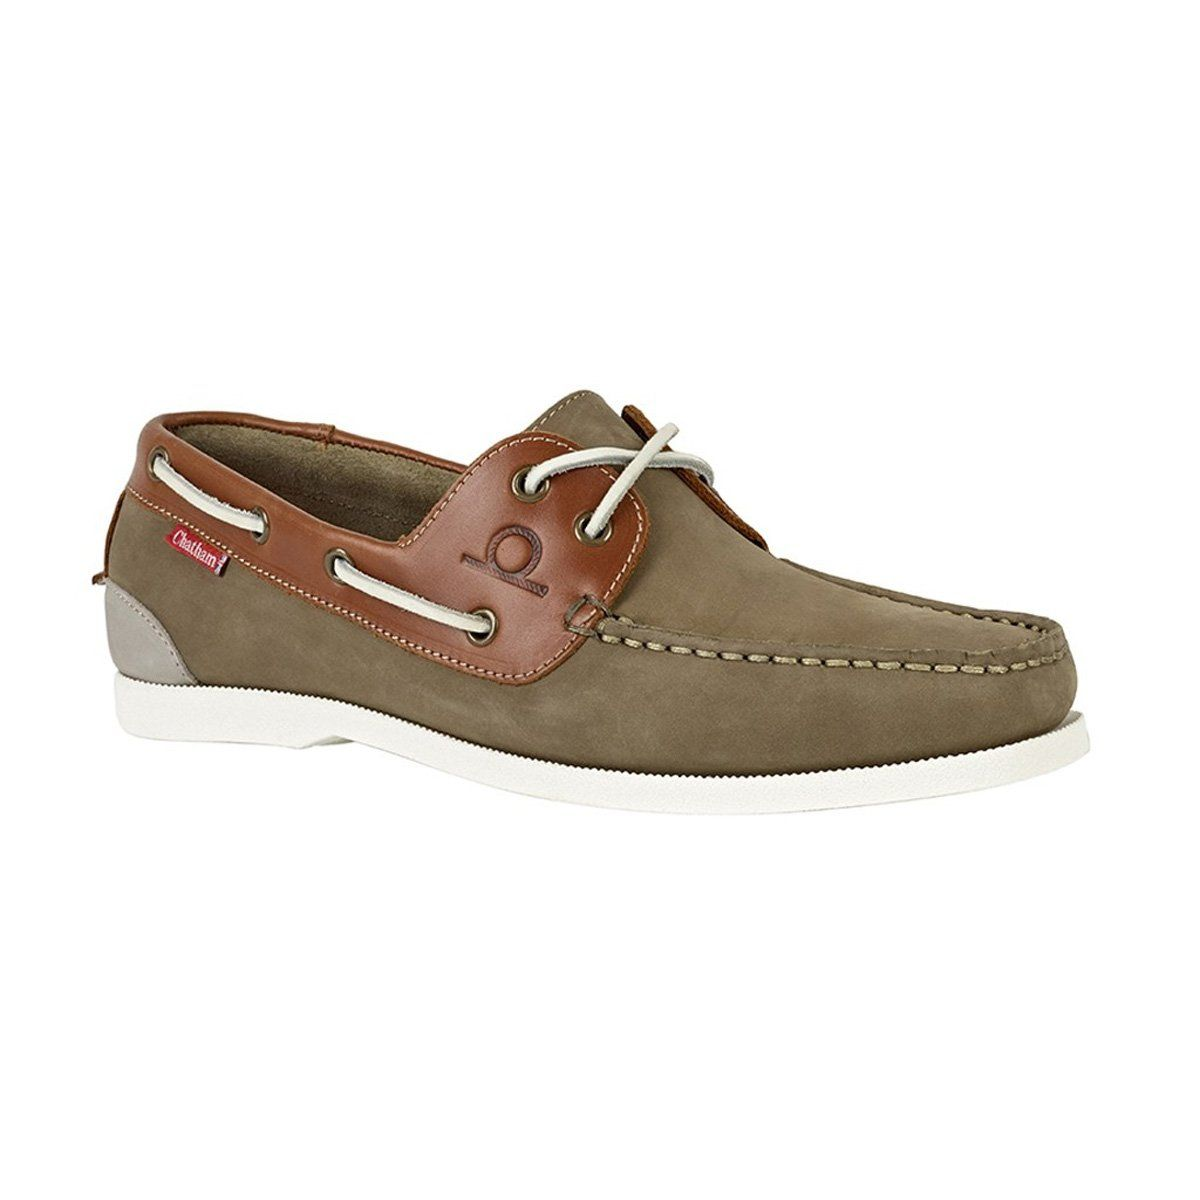 High Quality Goodyear Welted Shoes and